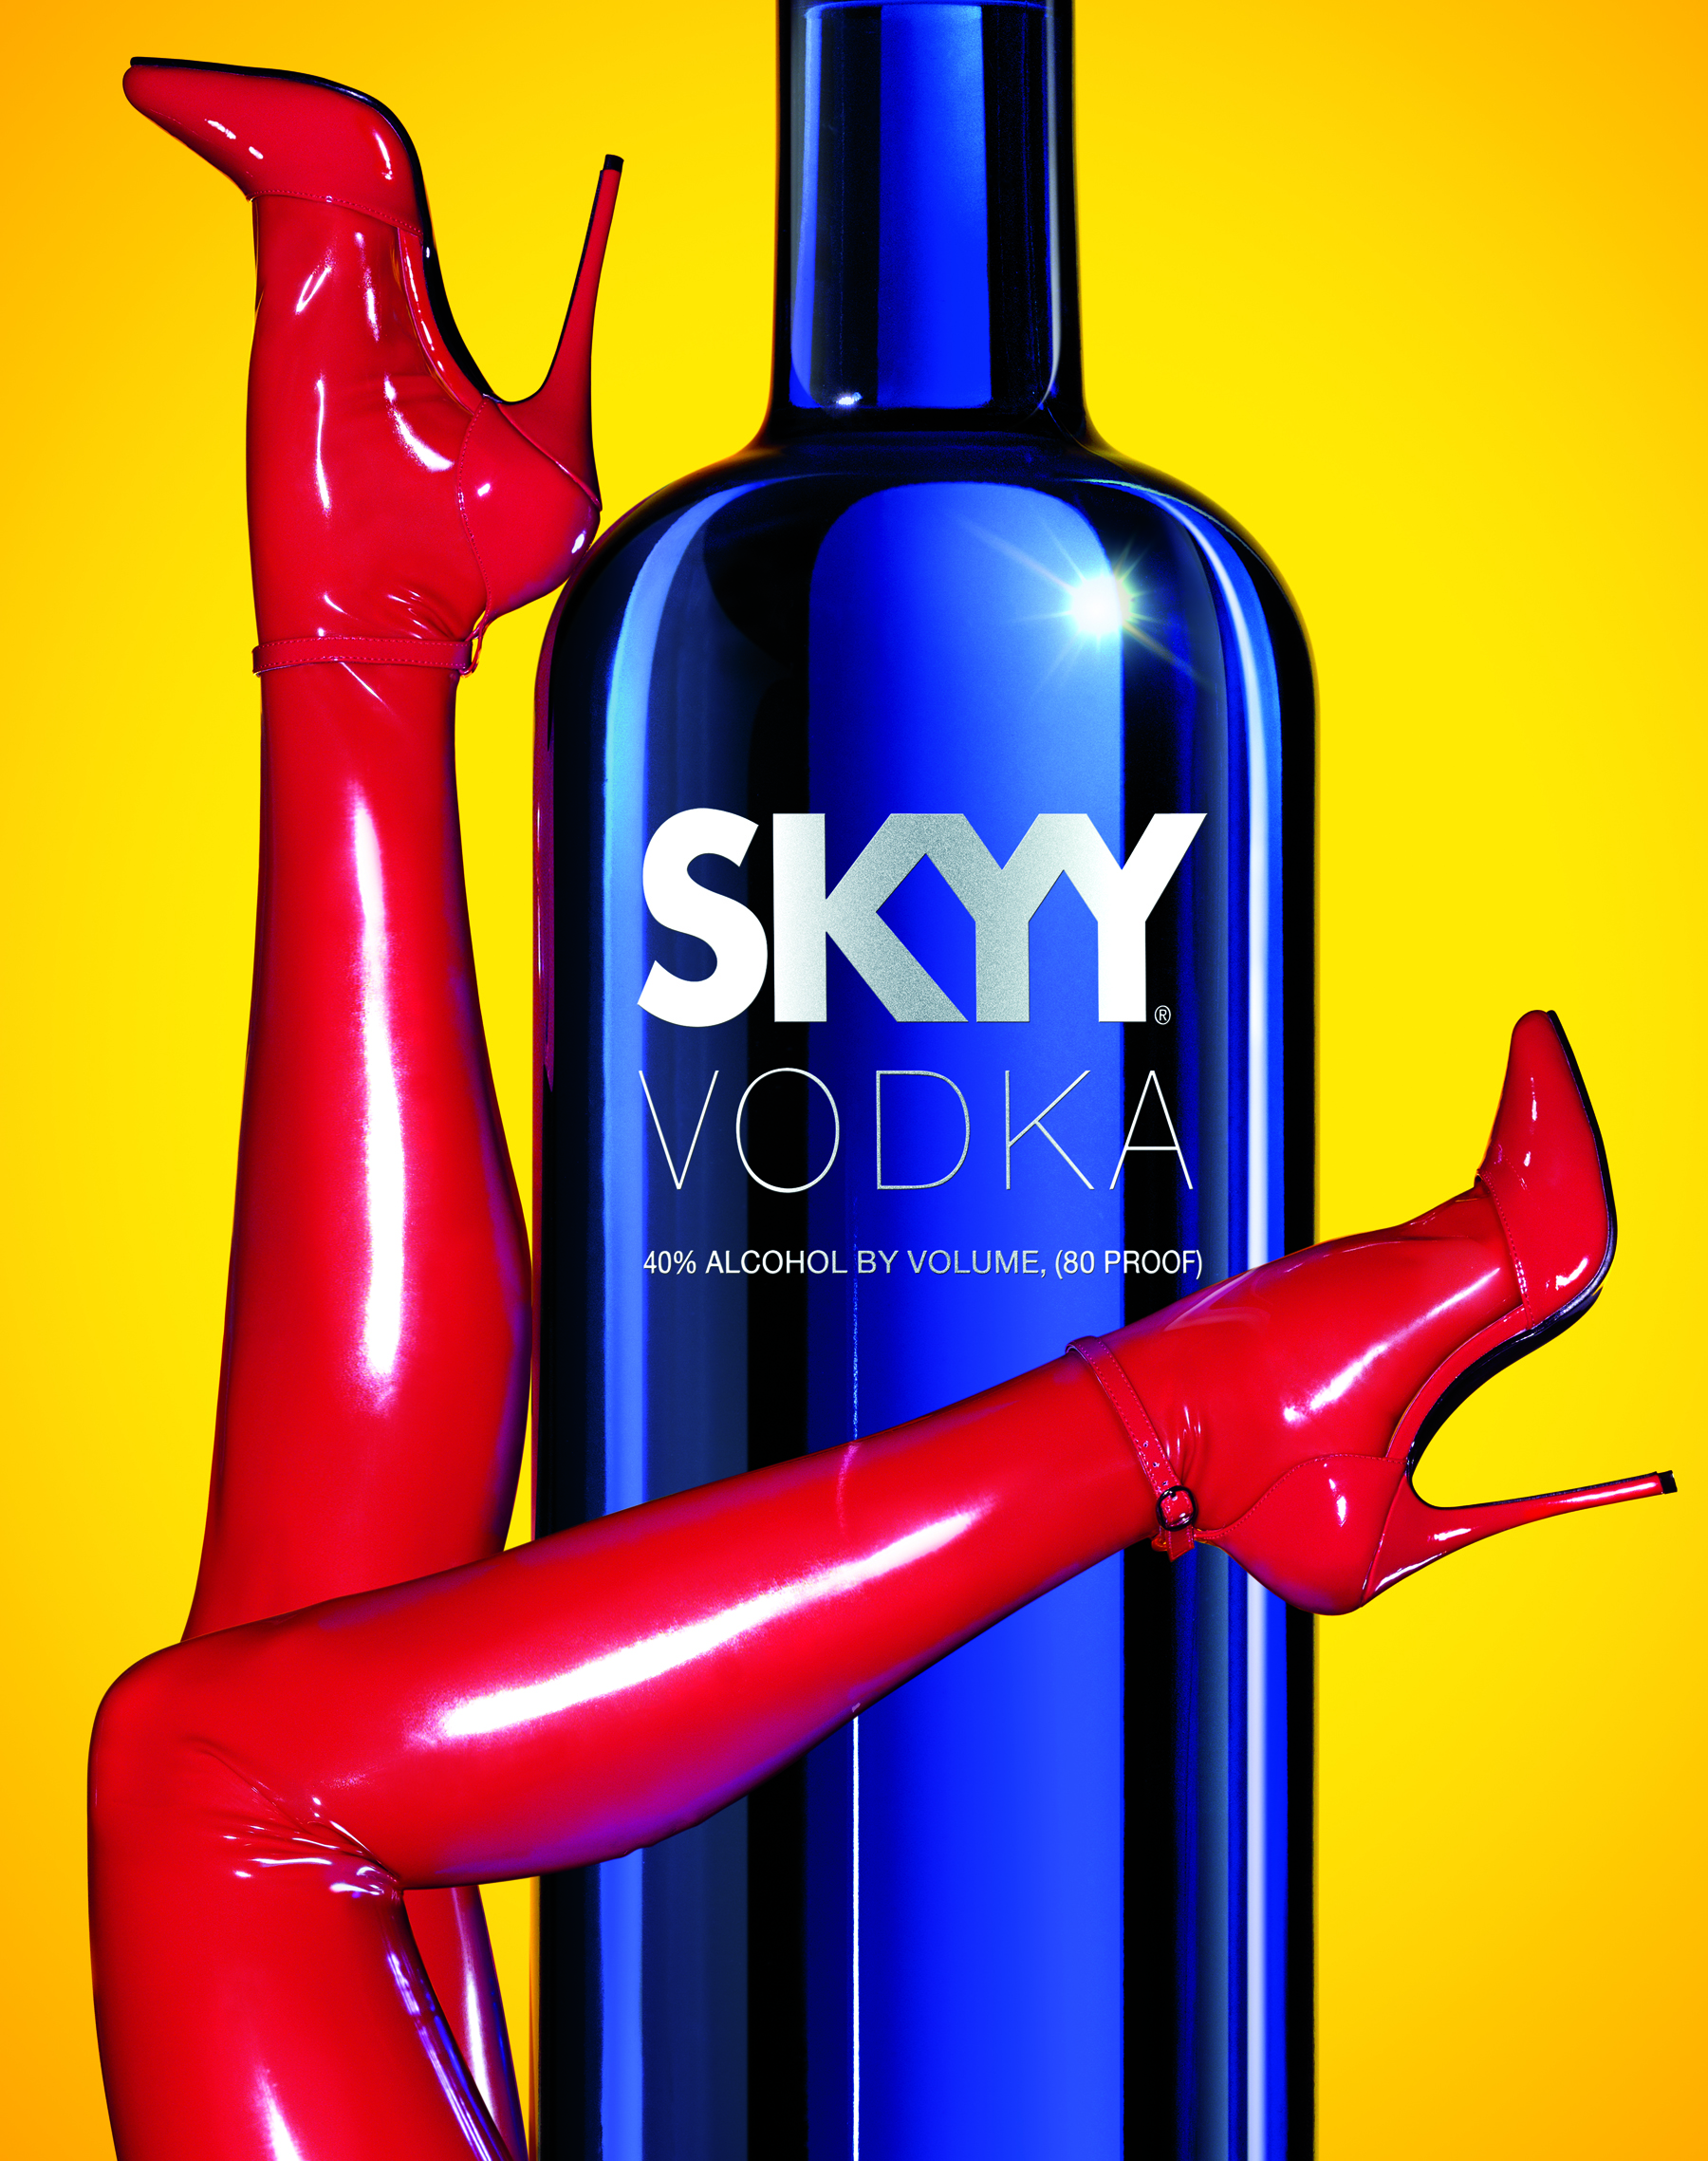 skyy vodka Skyy vodka presents a clean, crisp aroma with a hint of grain sweetness the body is medium, and the palate is very clean - 94 points wine enthusiast & 2010 ultimate spirits challenge.